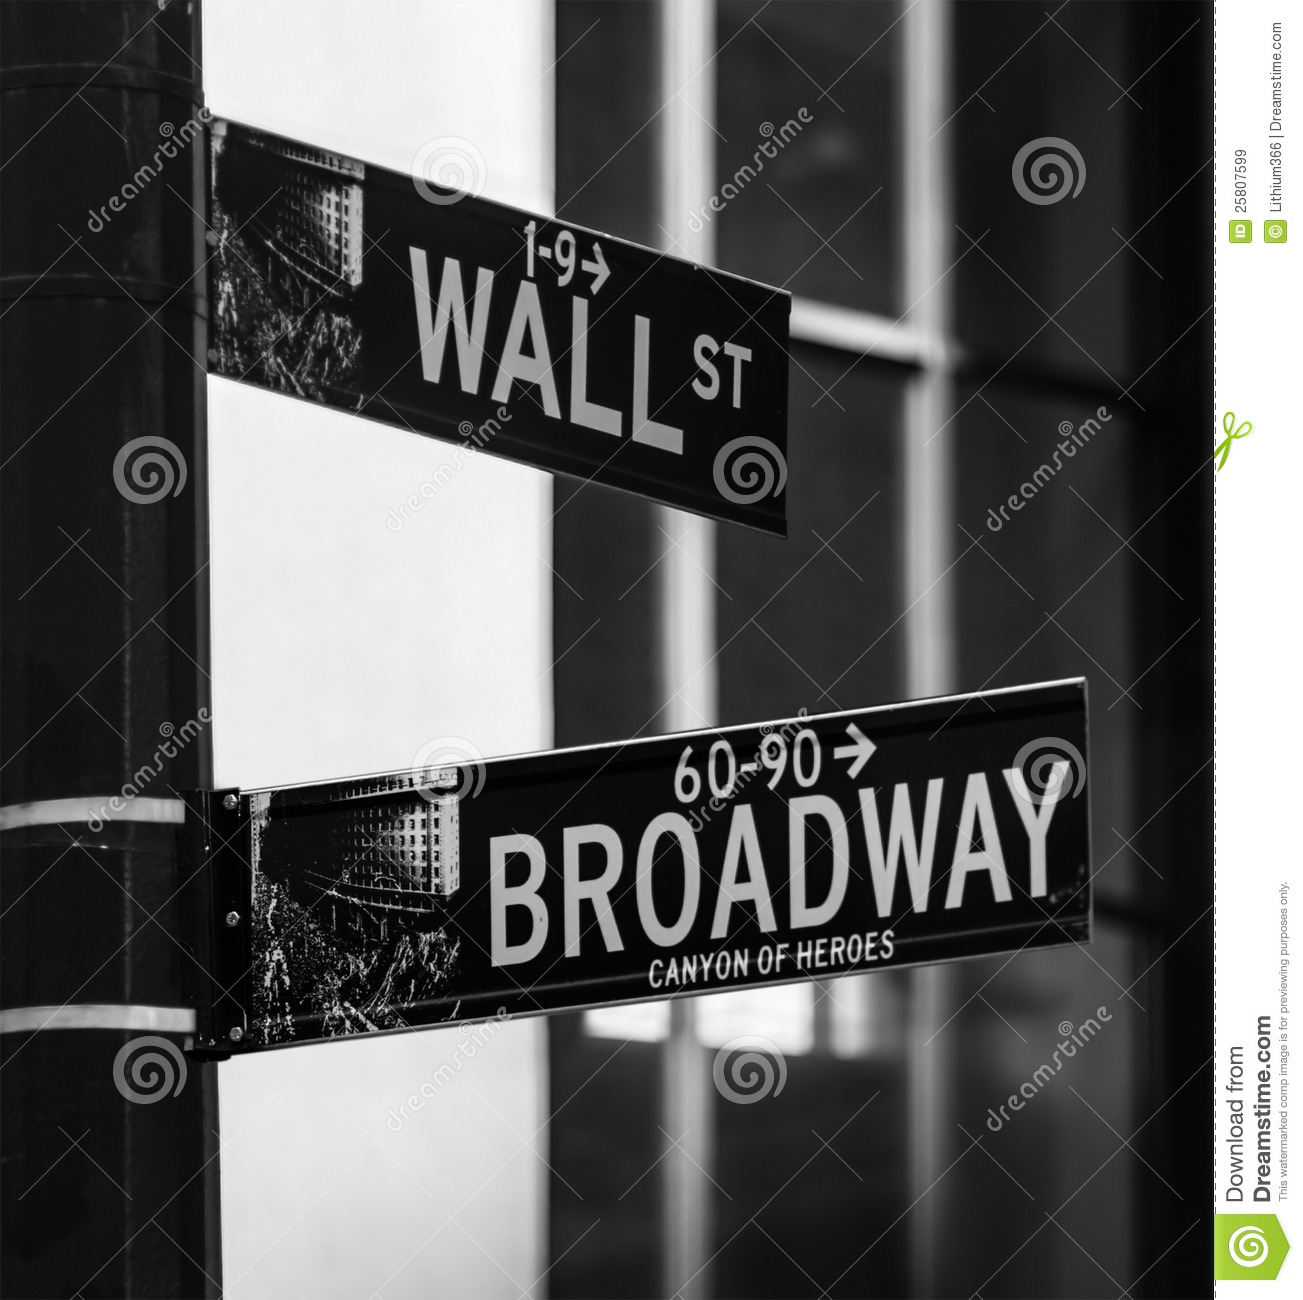 Broadway Lights Clipart - More information